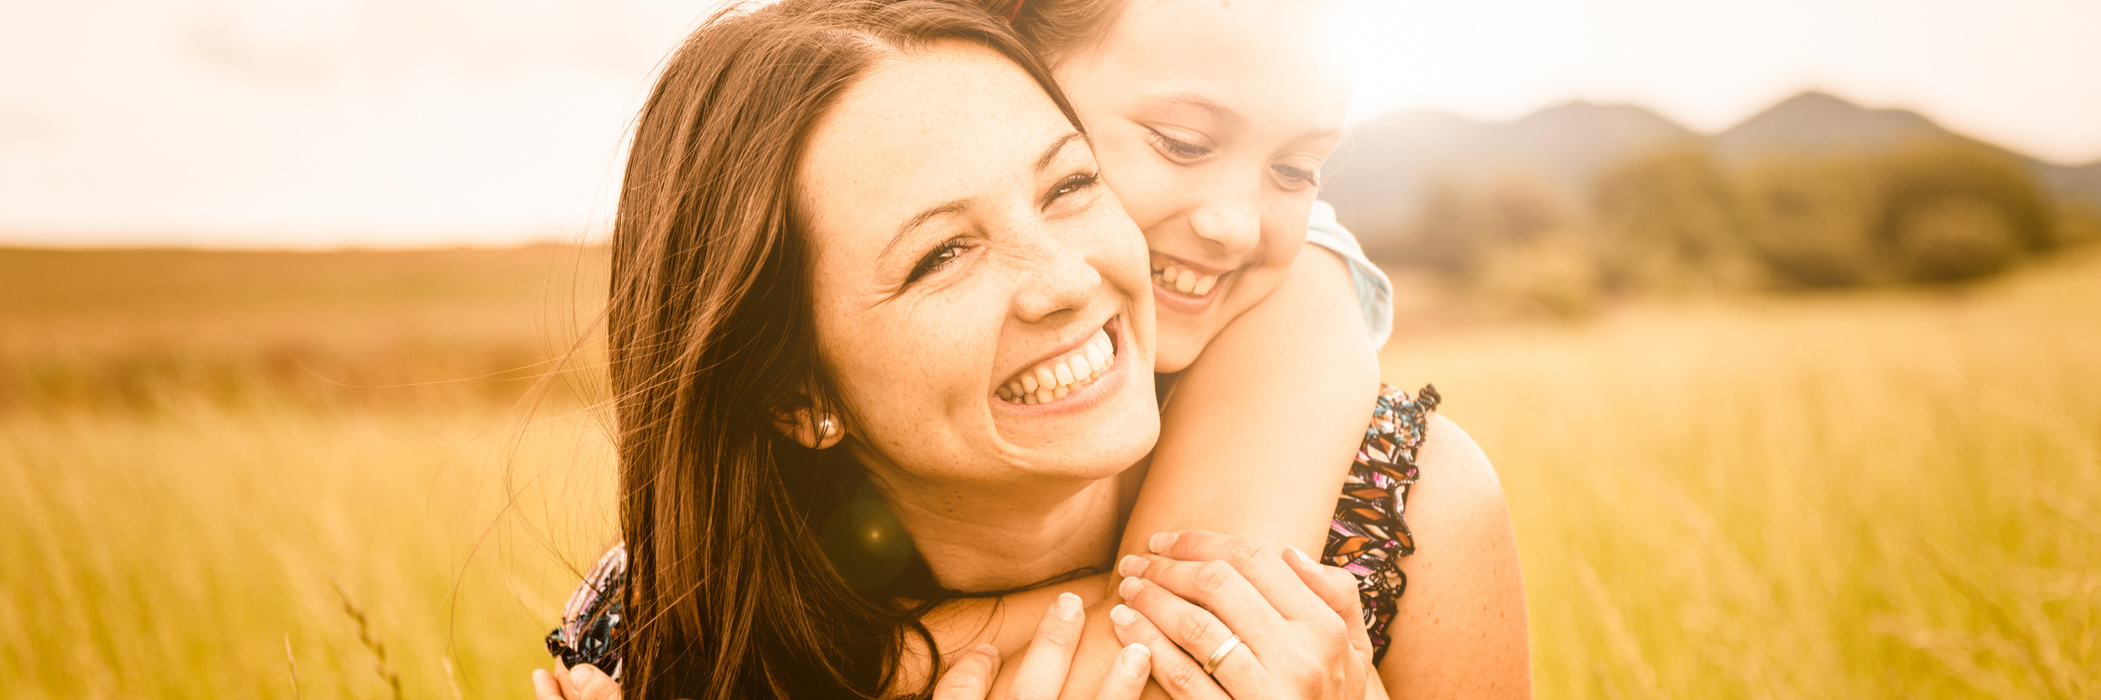 mother and daughter hugging in field smiling